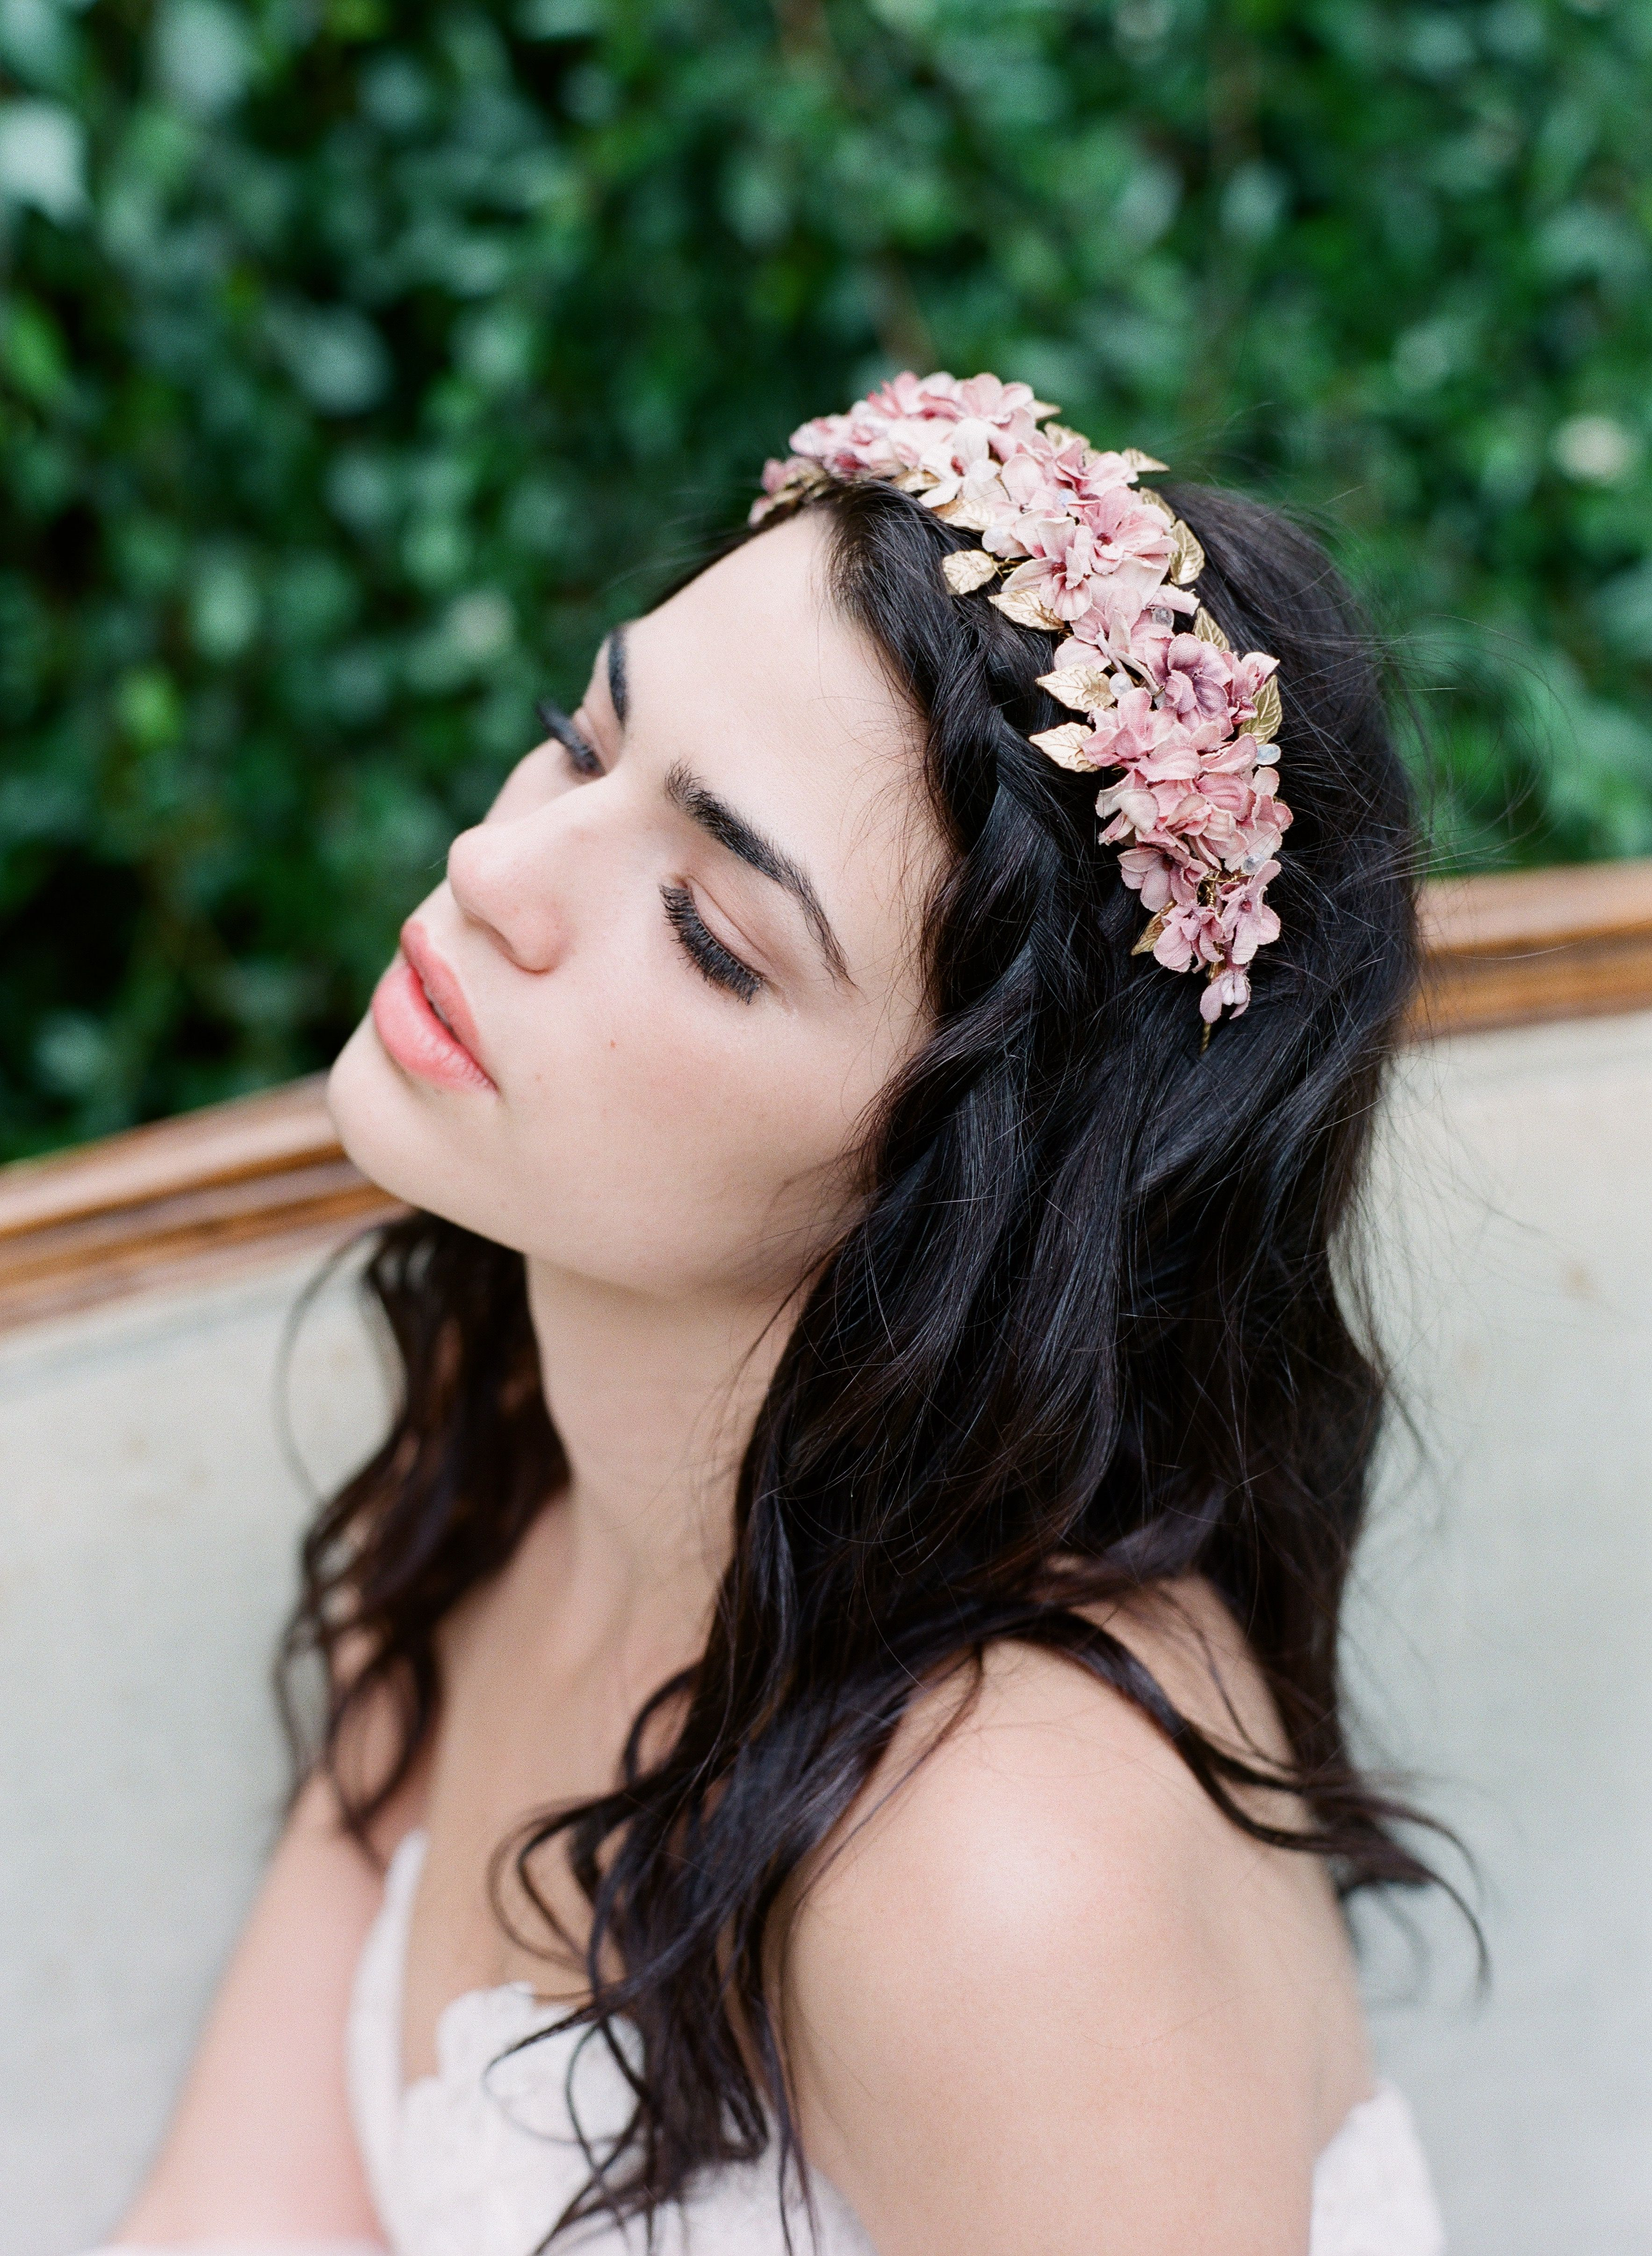 half up half down bridal style wedding hairstyle with flower crown